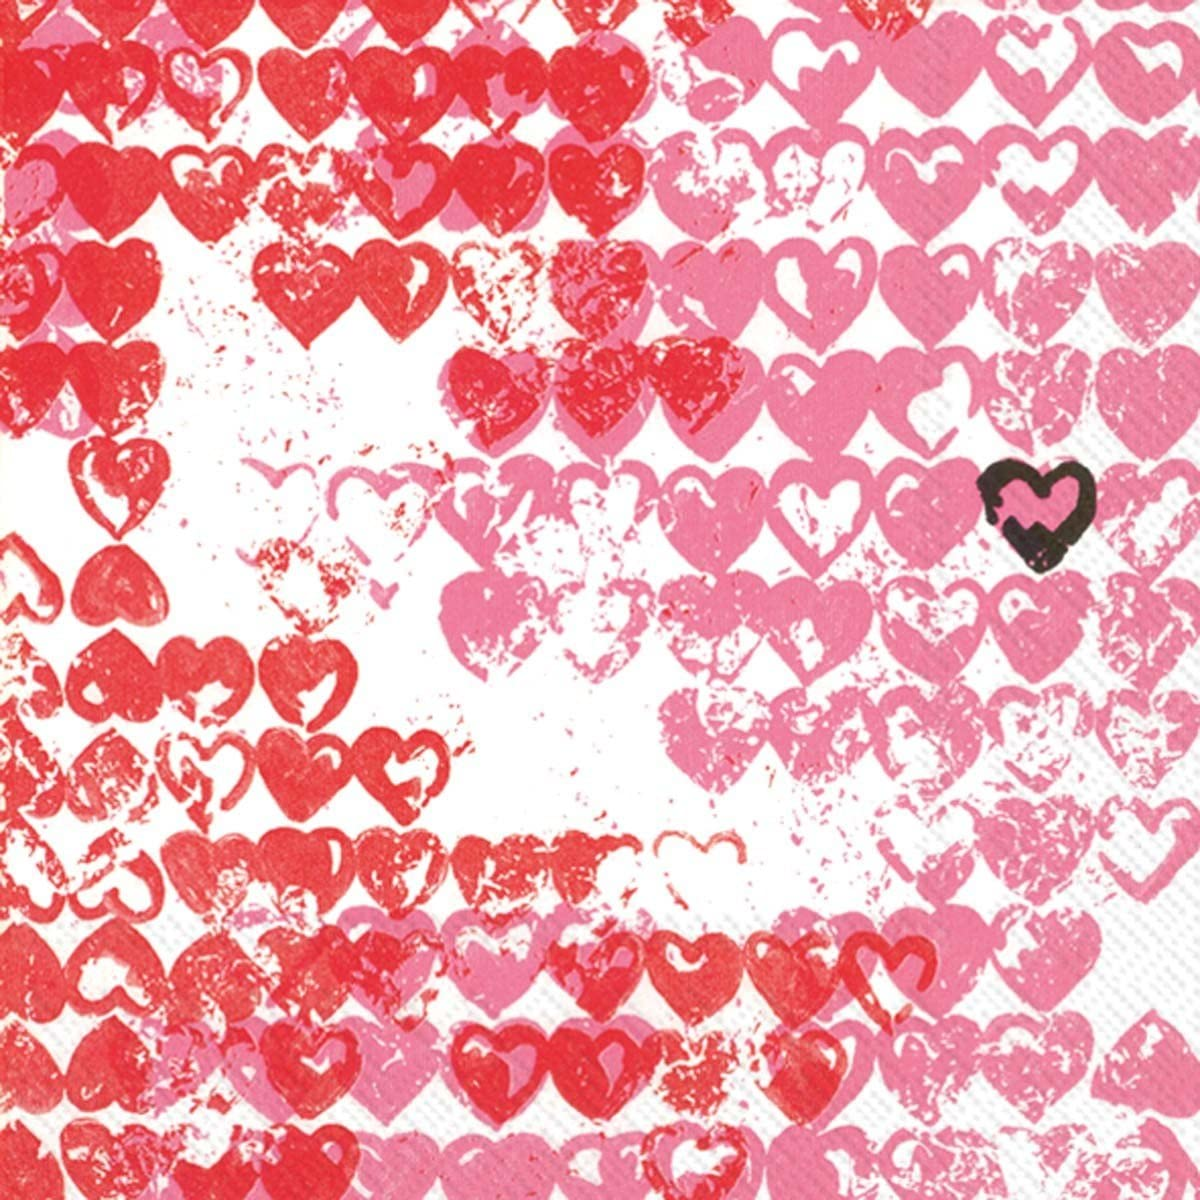 Ideal Home Range 20-Count 3-Ply Paper Cocktail Napkins, Red Little Heart